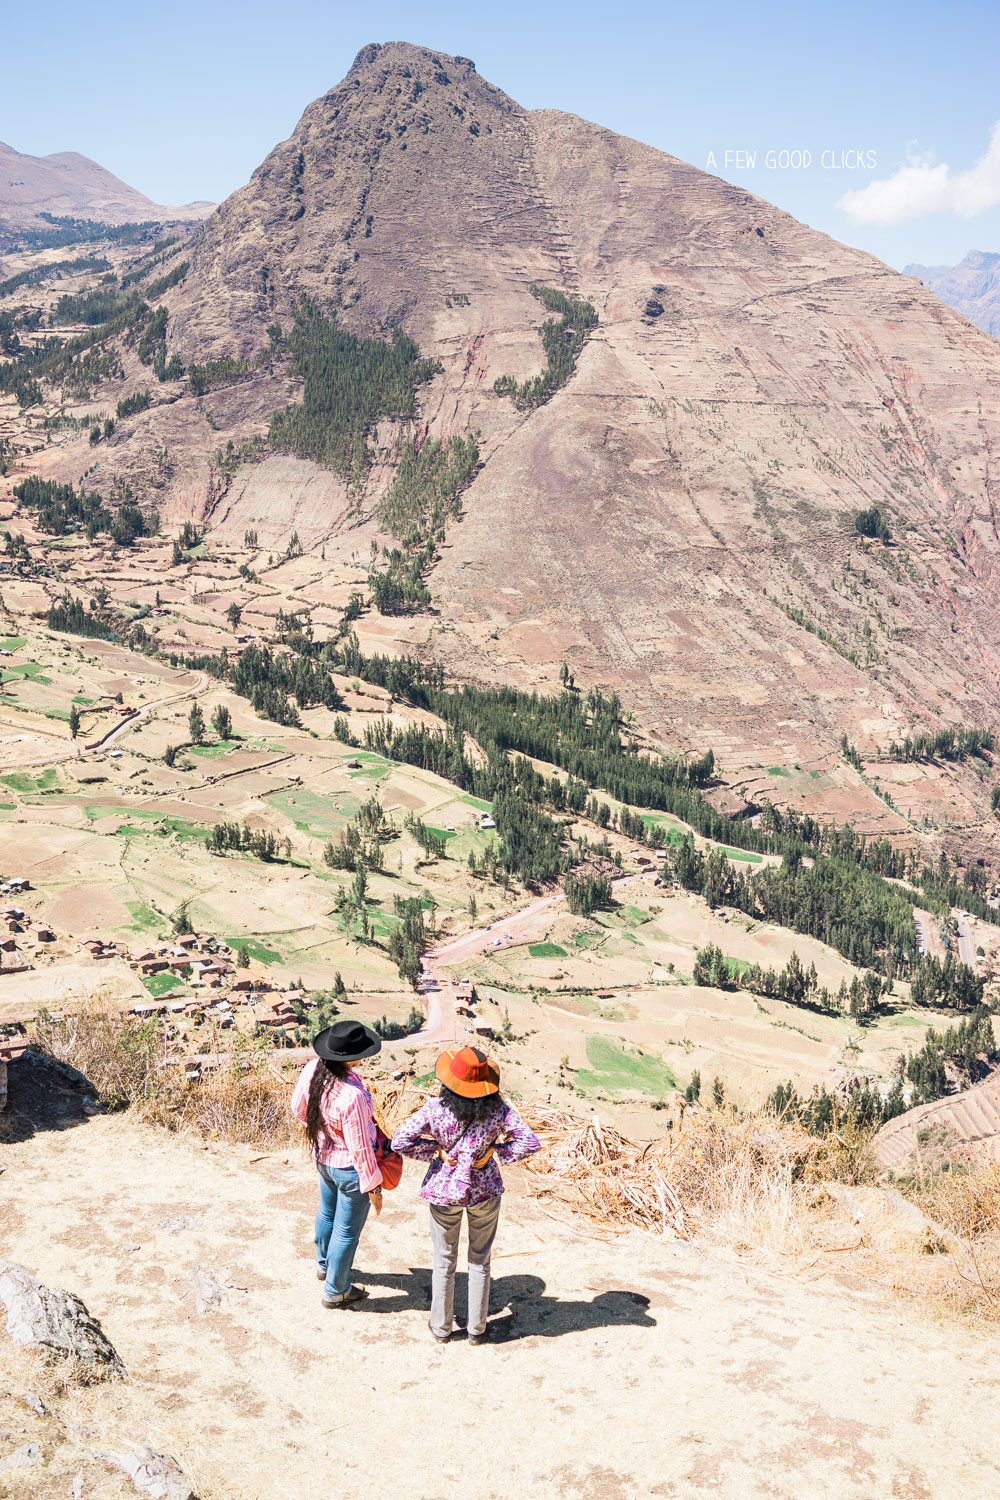 ruins-of-pisaq-overlooking-the-urubamba-river-travel-photography-by-a-few-good-clicks-net